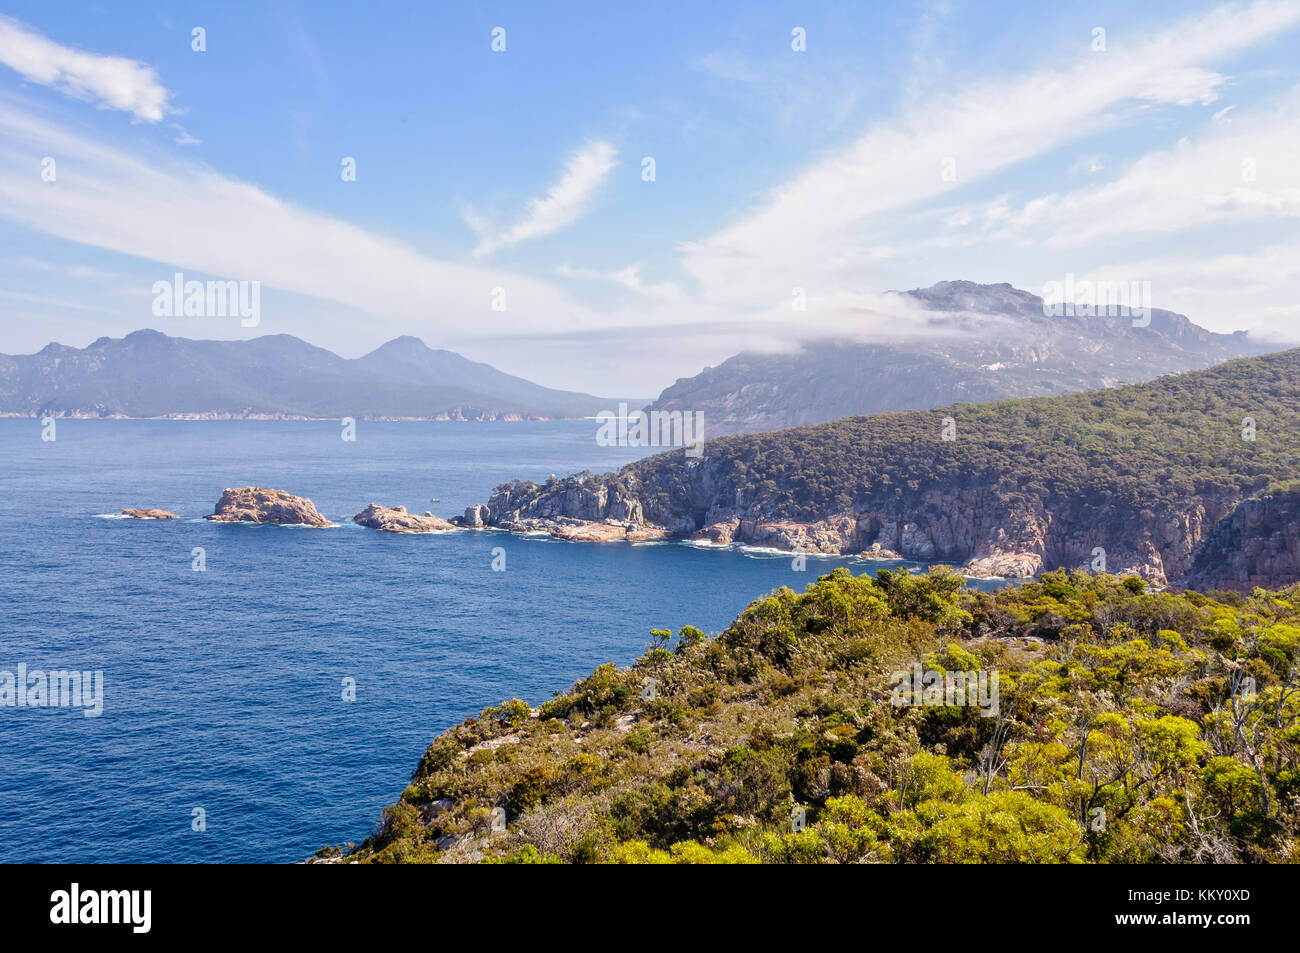 Light clouds over Carp Bay and The Hazards in the Freycinet National Park - Tasmania, Australia - Stock Image